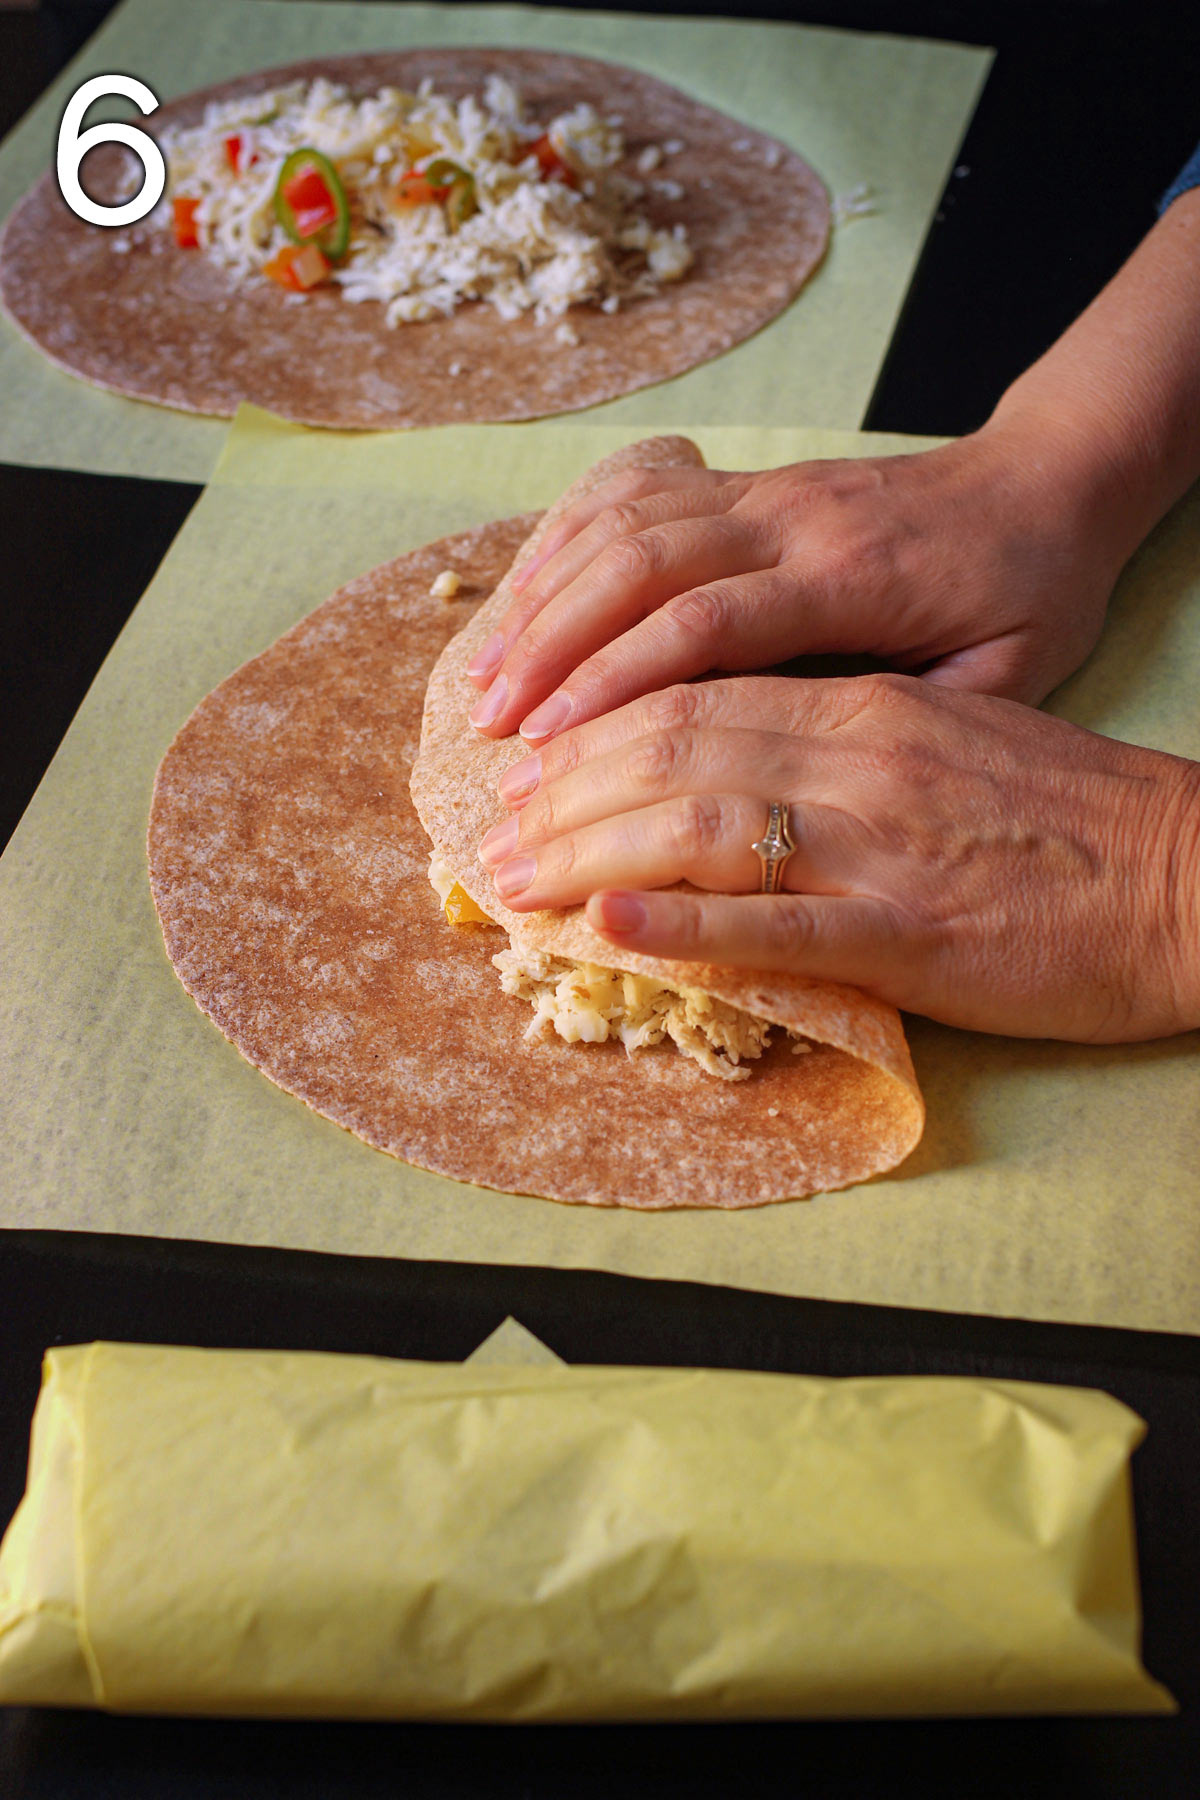 hand folding the bottom of the whole wheat tortilla over the filling of the burrito.